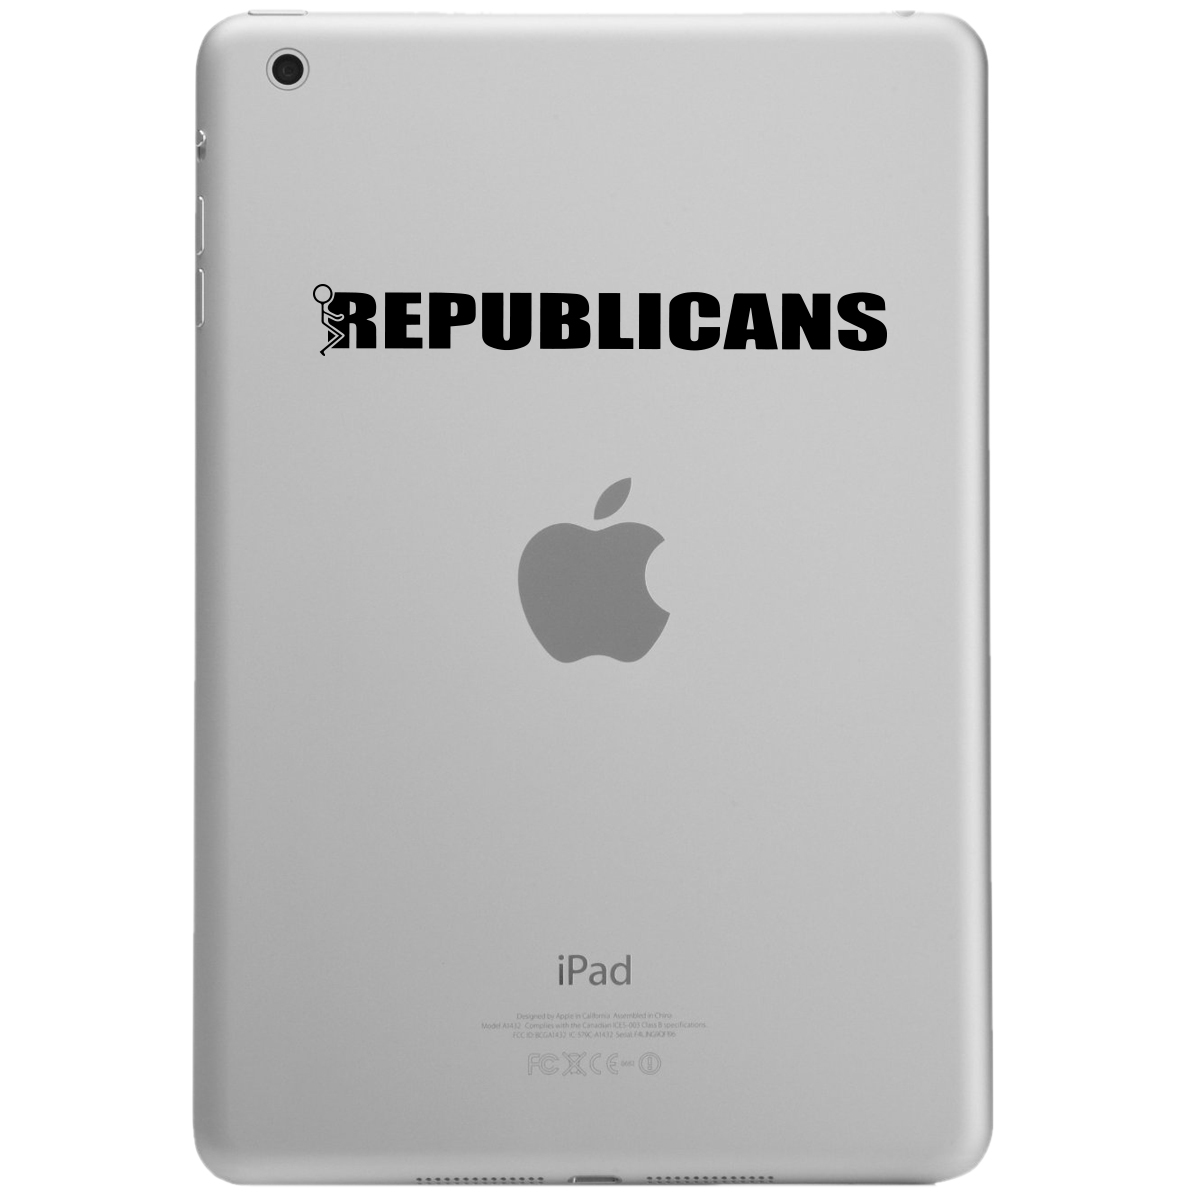 Funny Humping Stick Figure F*ck Republicans iPad Tablet Vinyl Sticker Decal